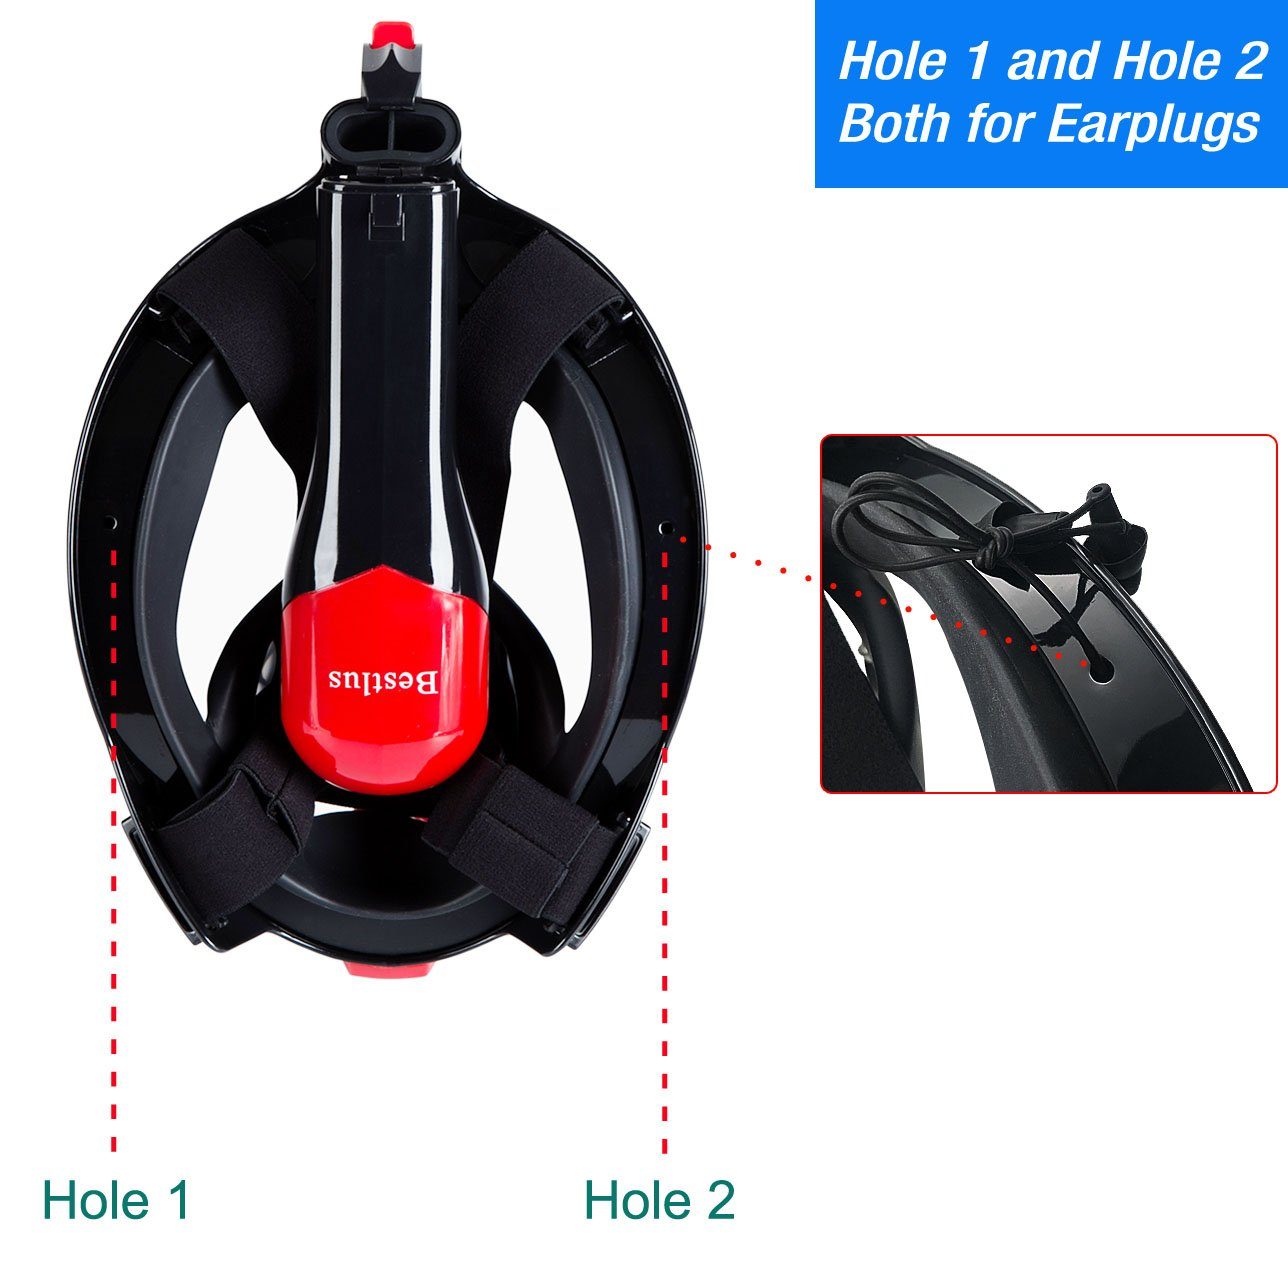 Bestlus Full Face Snorkel Mask Foldable Version 3.0 Panoramic 180/° View for Adults Kids with Anti-Fog Anti-Leak Design